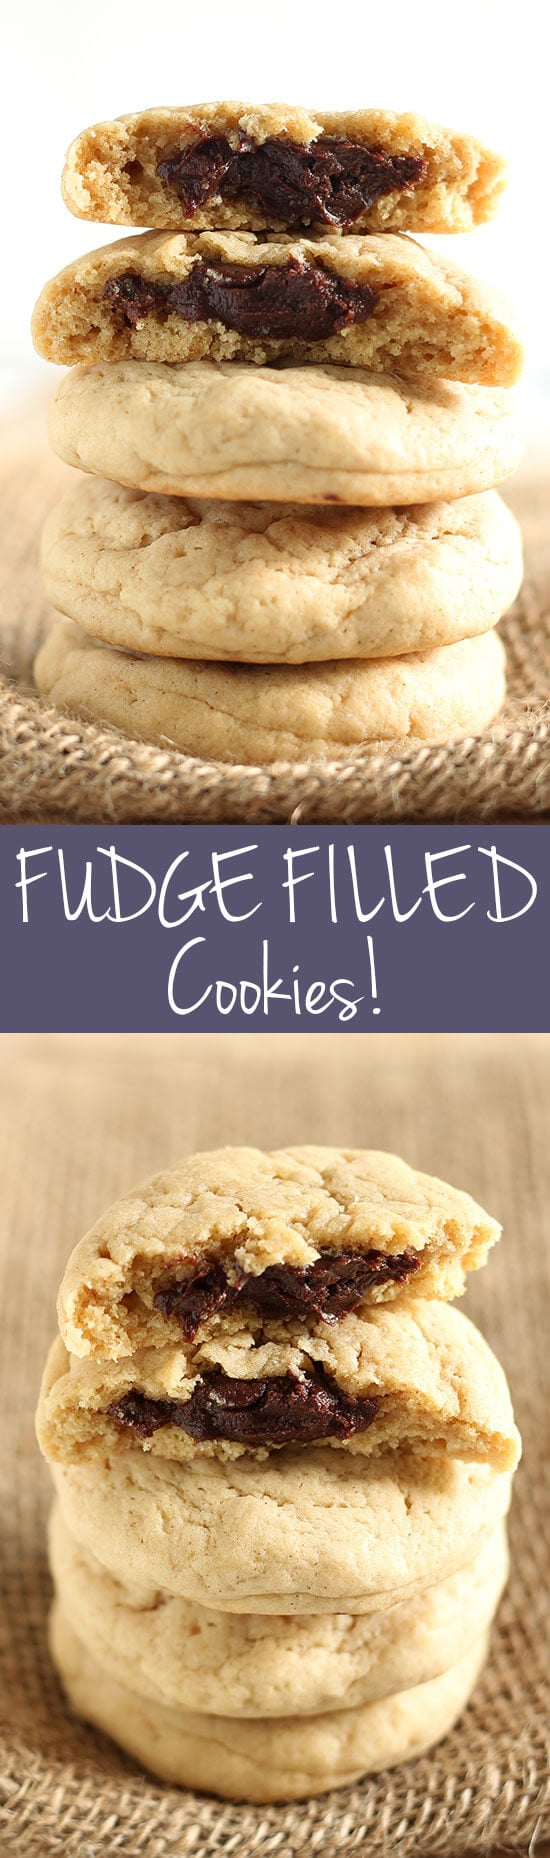 Recipes for cream filled cookies